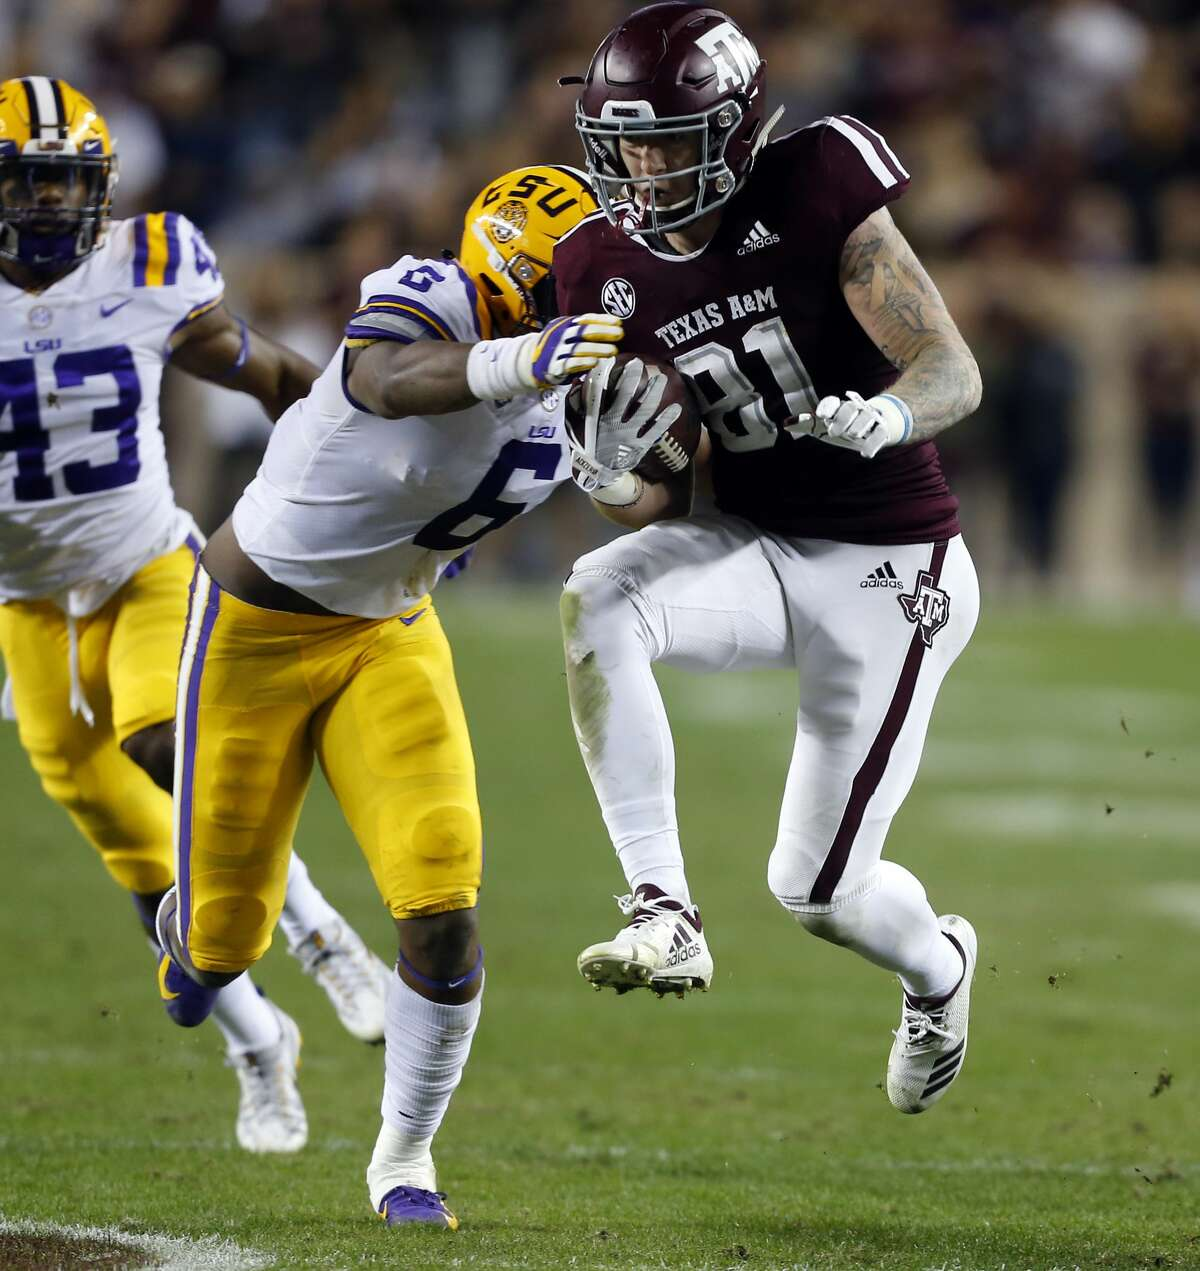 COLLEGE STATION, TEXAS - NOVEMBER 24: Jace Sternberger #81 of the Texas A&M Aggies runs past Jacob Phillips #6 of the LSU Tigers after a catch during the second quarter at Kyle Field on November 24, 2018 in College Station, Texas. (Photo by Bob Levey/Getty Images)